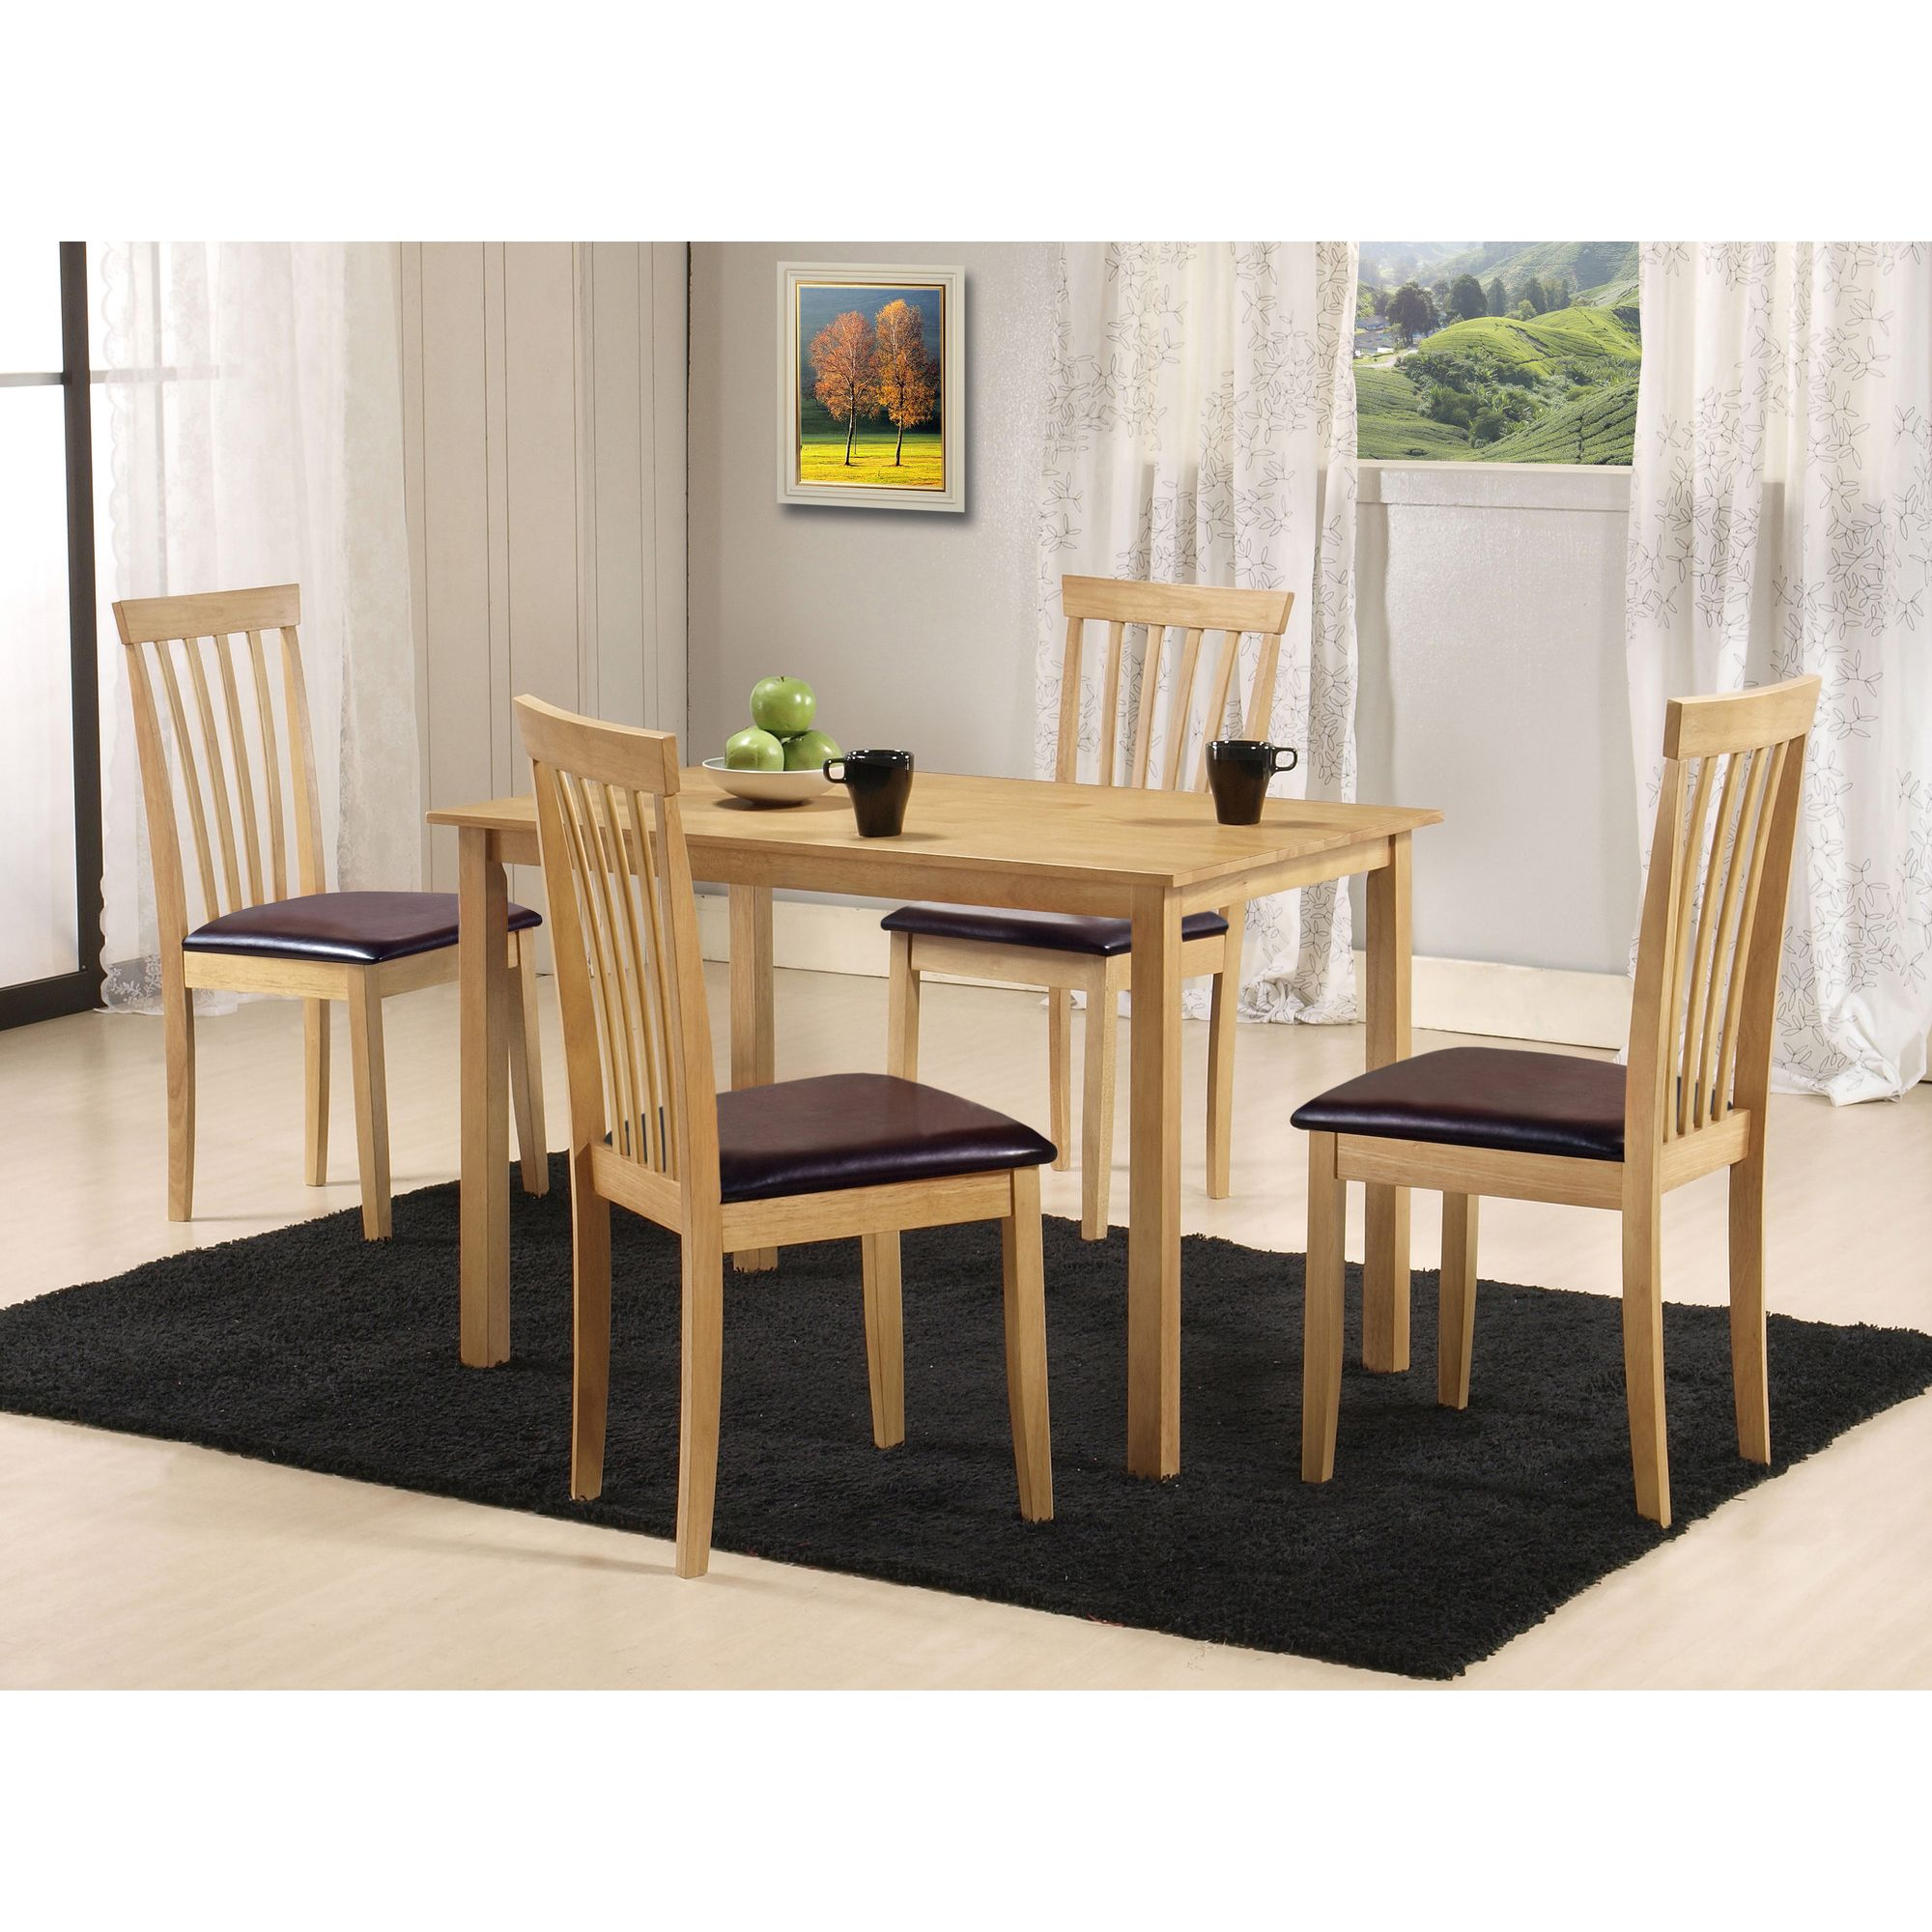 G&P Furniture Torino 5 Piece Rectangular Dining Set at Tesco Direct